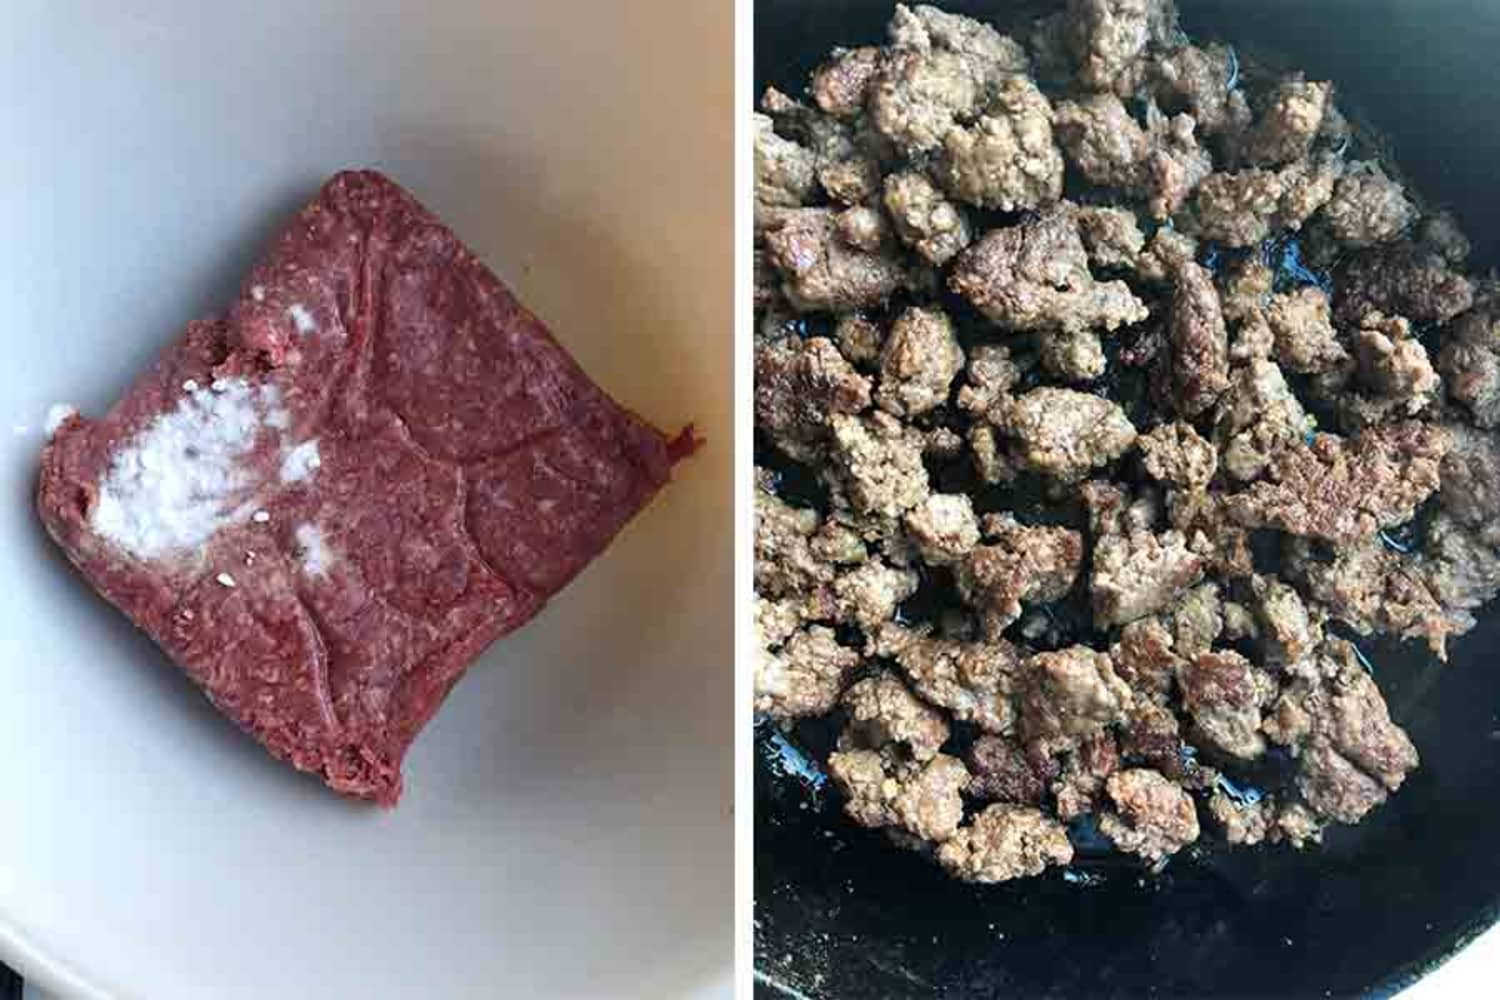 I Can't Believe How Well This One-Ingredient Trick Works for Cooking Ground Beef